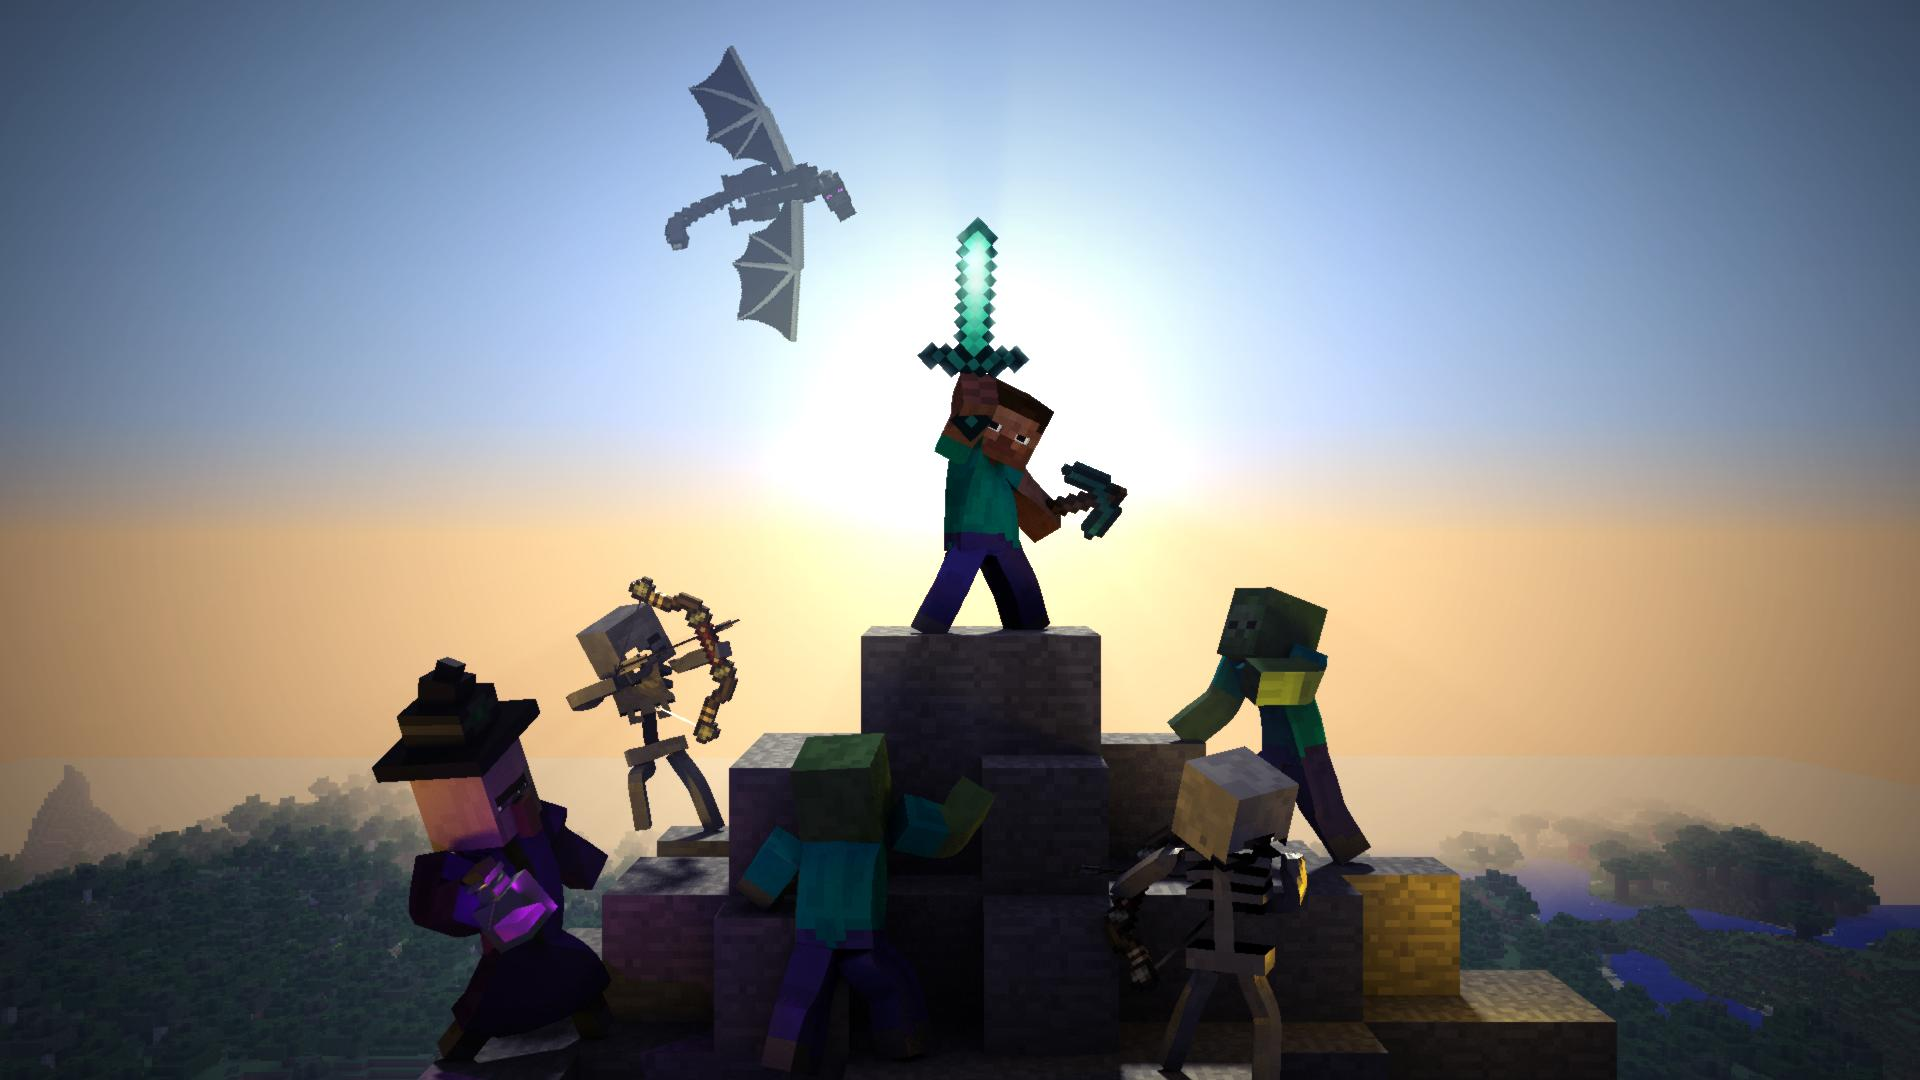 Best Wallpaper Minecraft Desktop - ILBEFcG  Collection_6911100.jpg